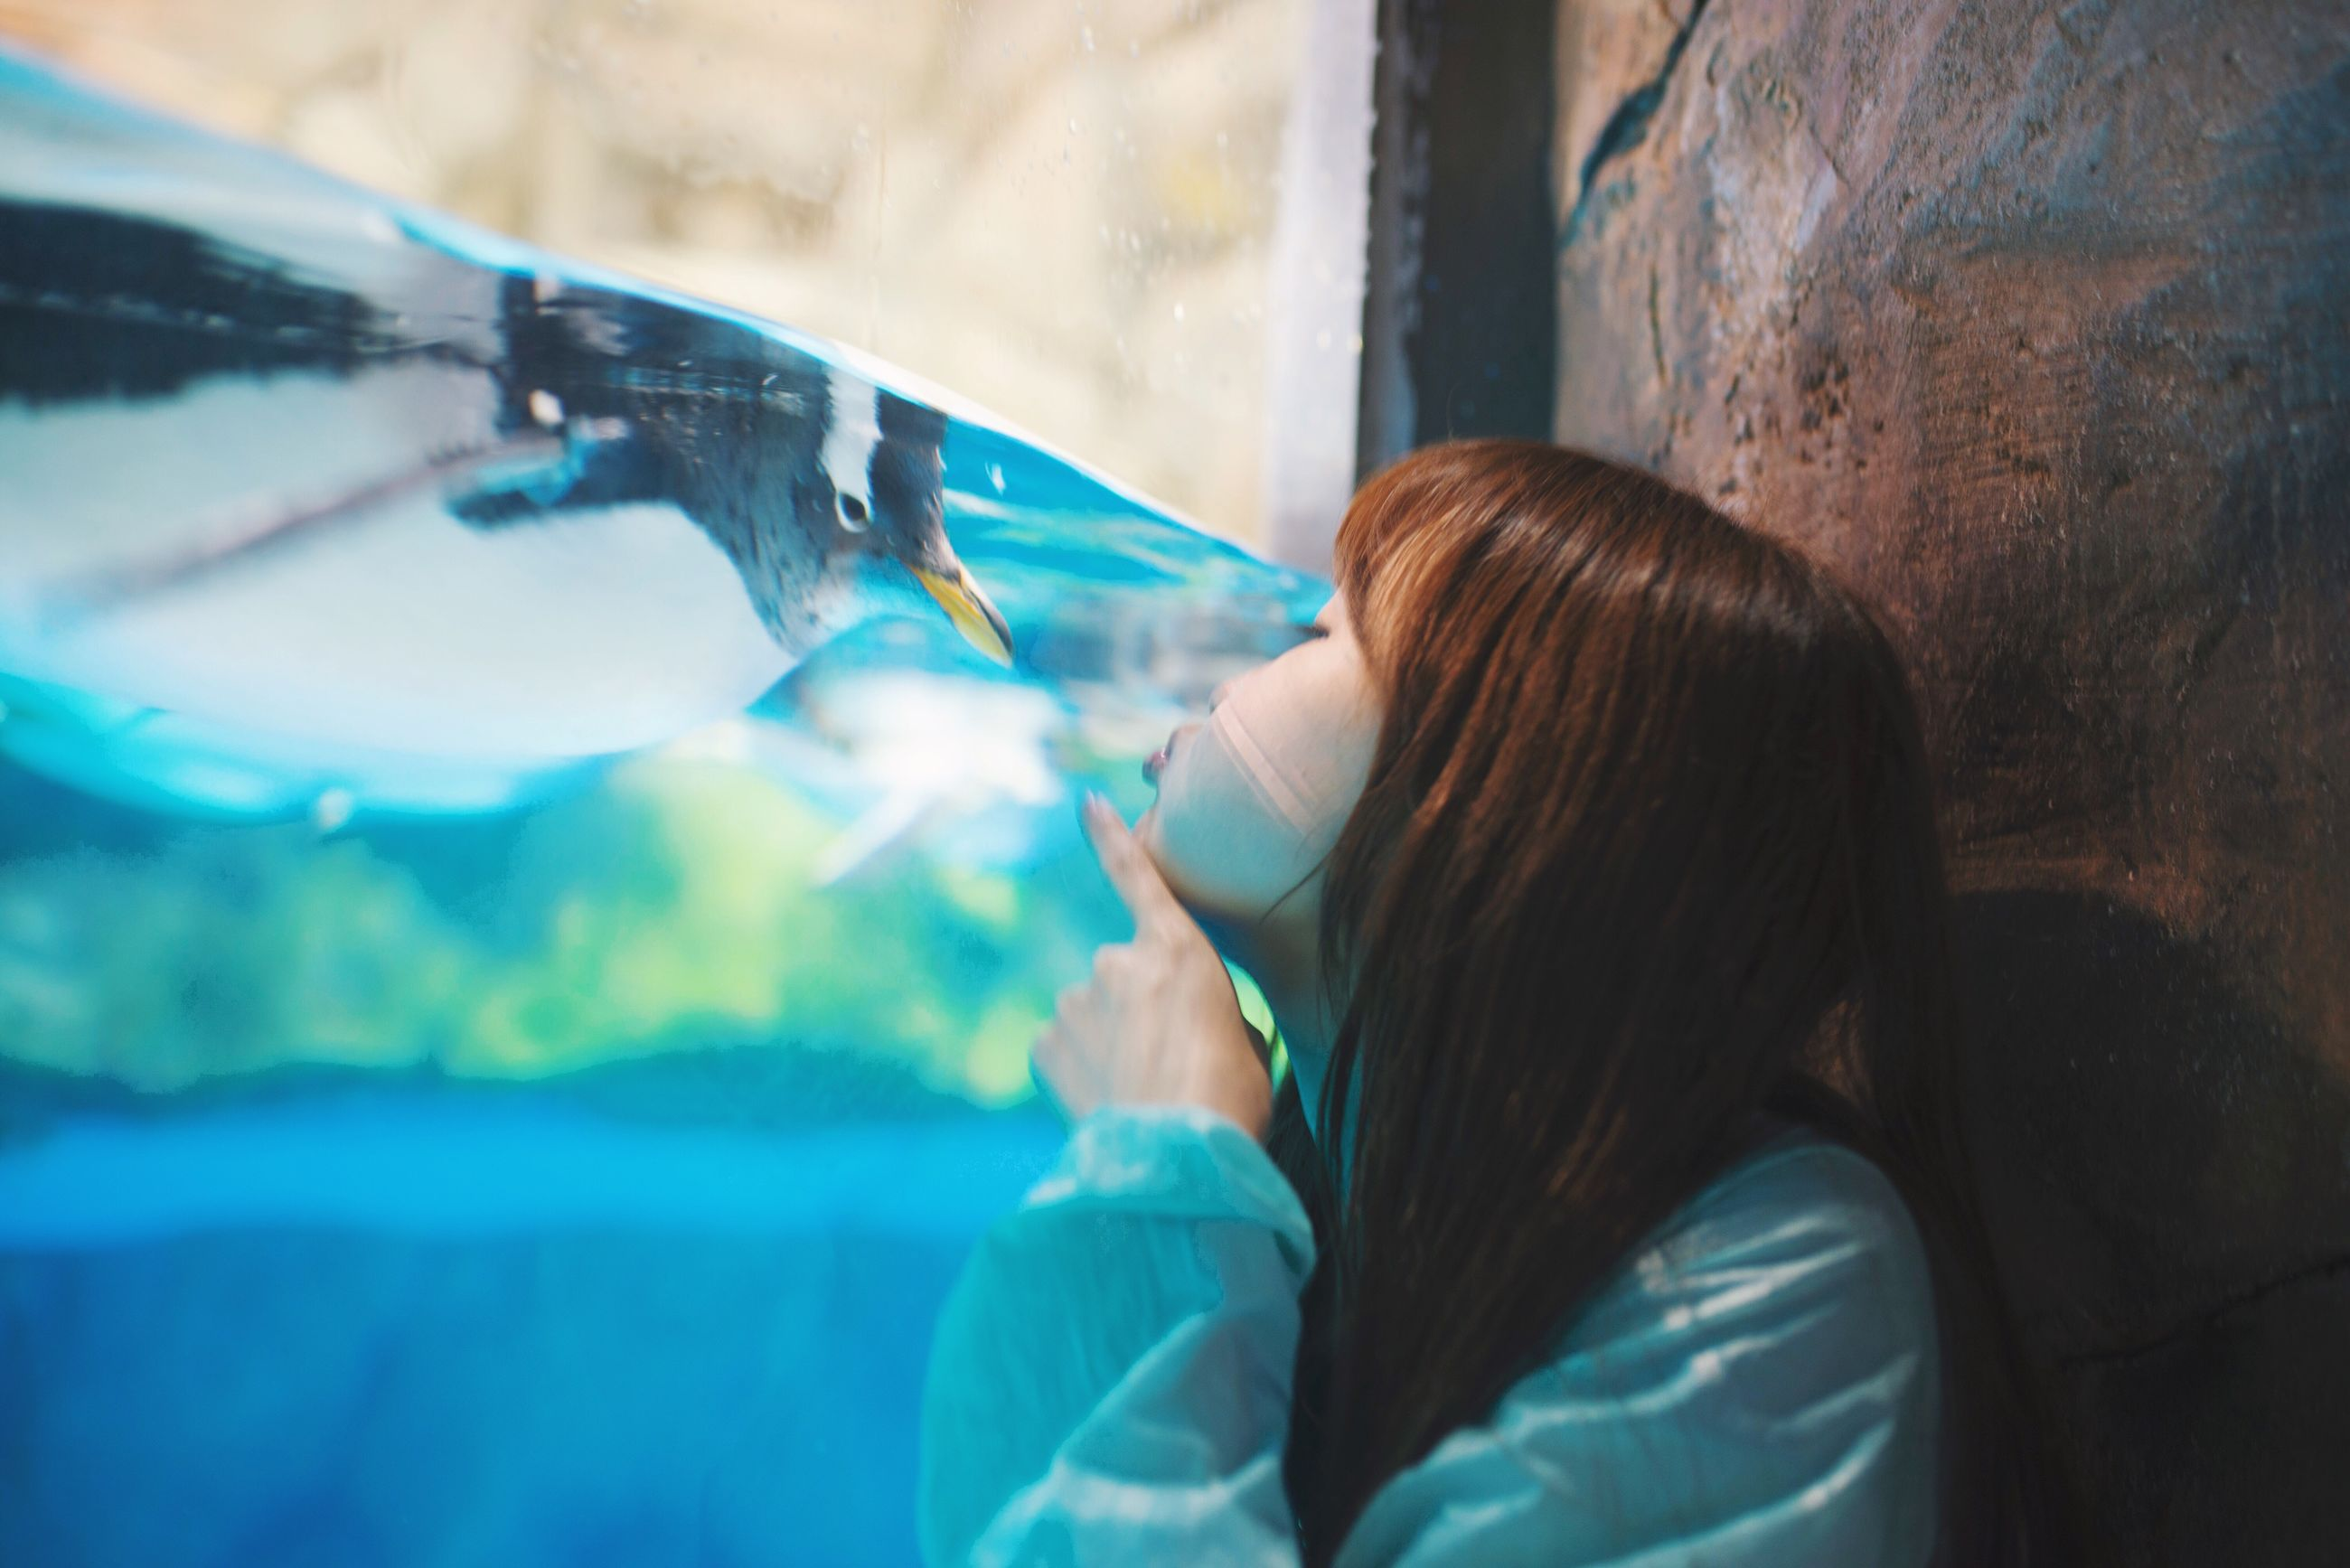 lifestyles, leisure activity, headshot, rear view, water, person, head and shoulders, focus on foreground, blue, indoors, long hair, waist up, close-up, side view, transparent, day, casual clothing, sea